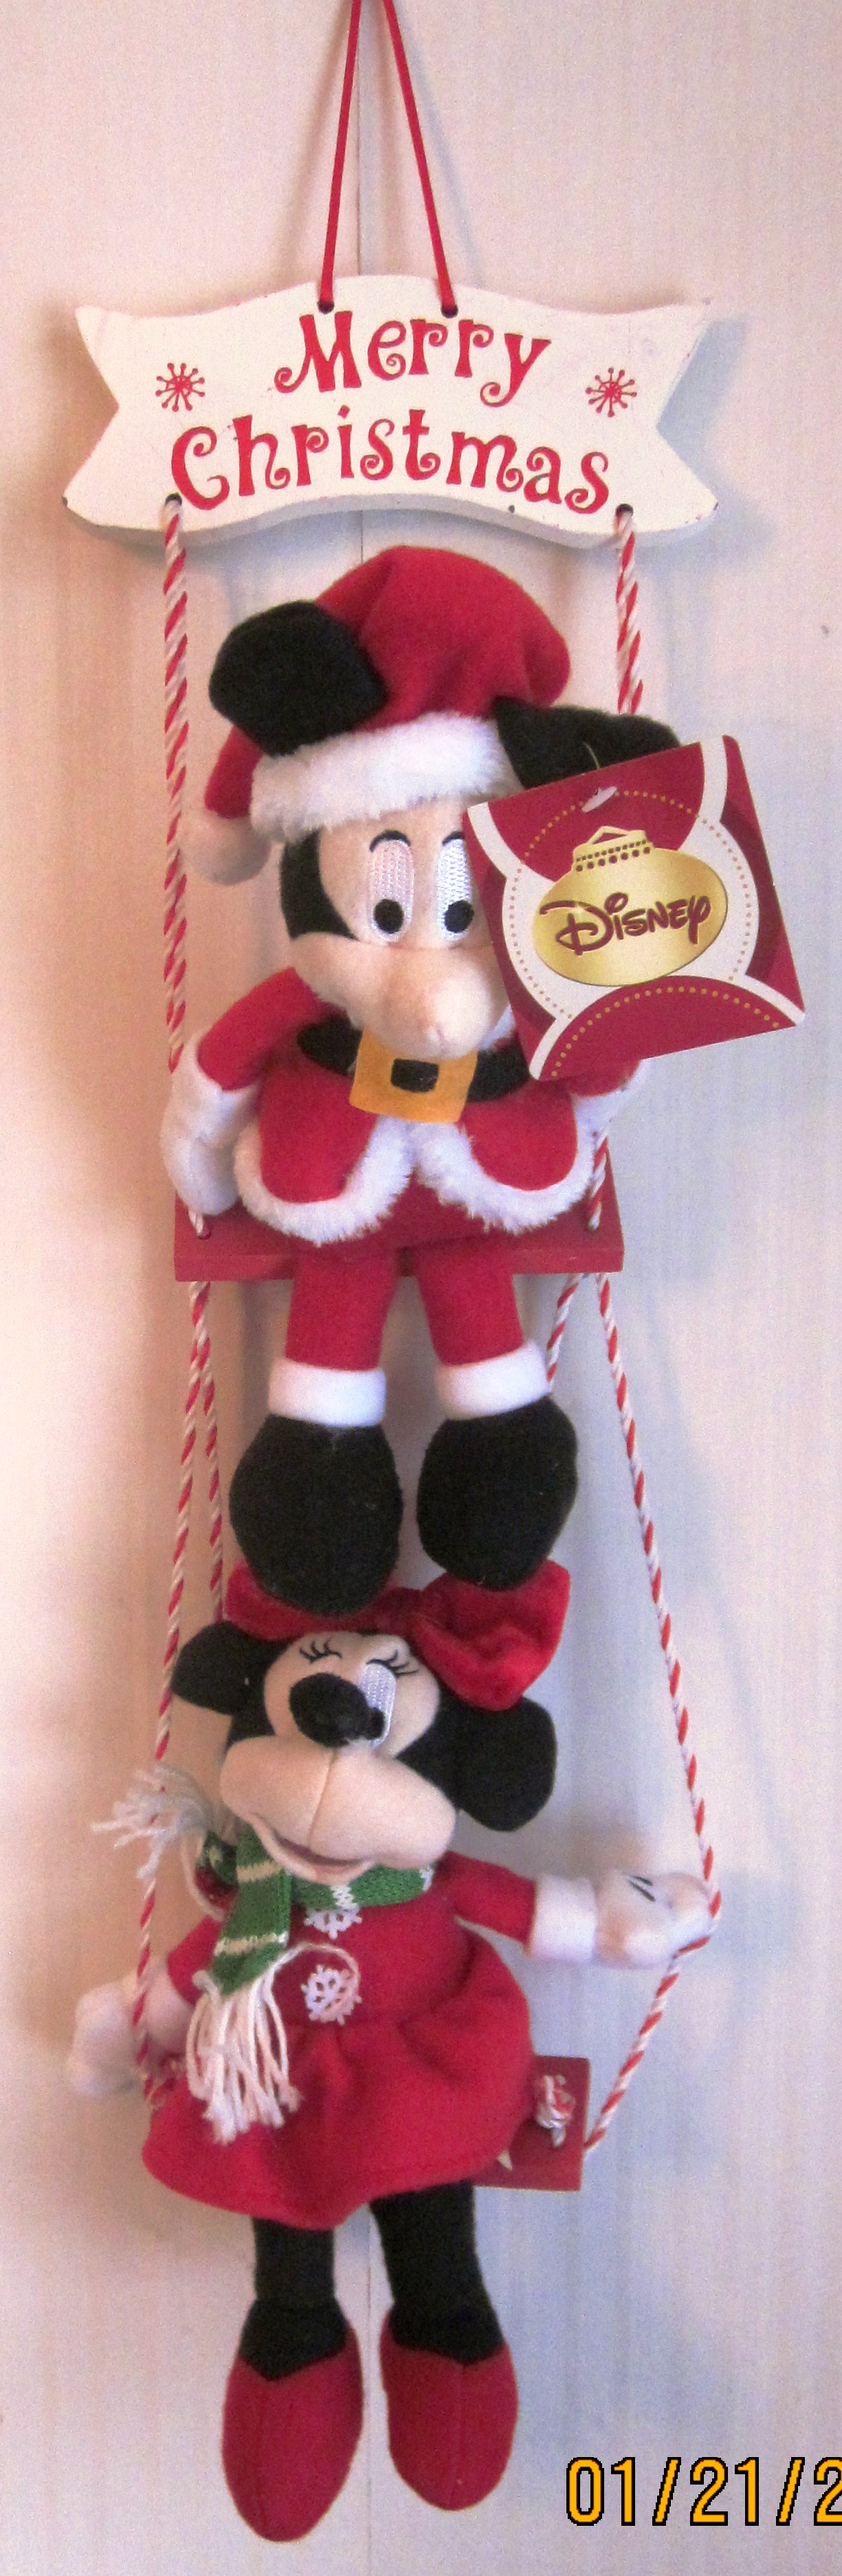 Disney Christmas Swing Mickey and Minnie Merry Christmas Sign